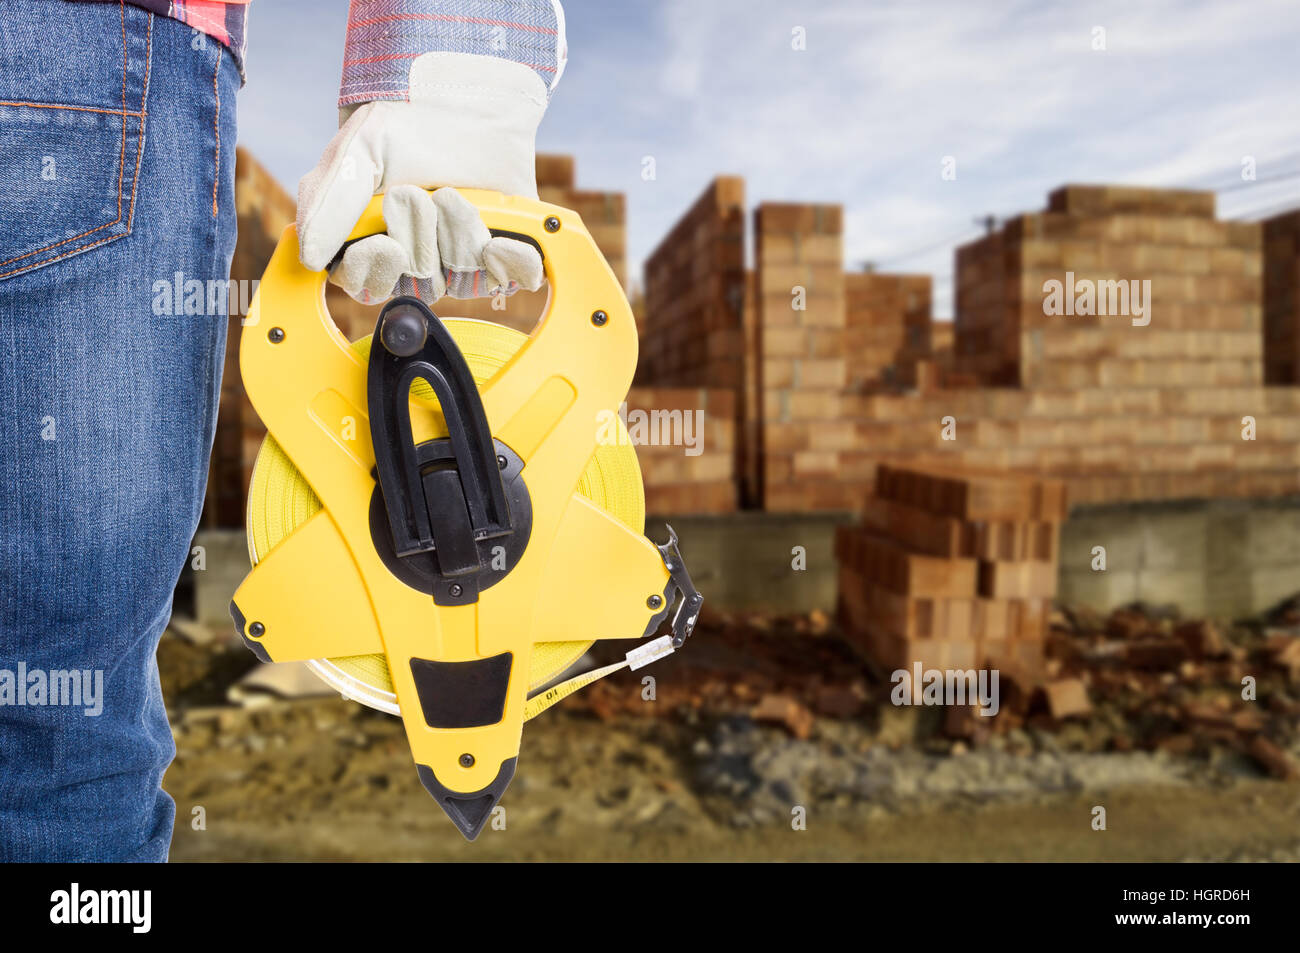 Closeup view of measuring roulette kit in engineer hand as outdoor construction concept with copyspace - Stock Image